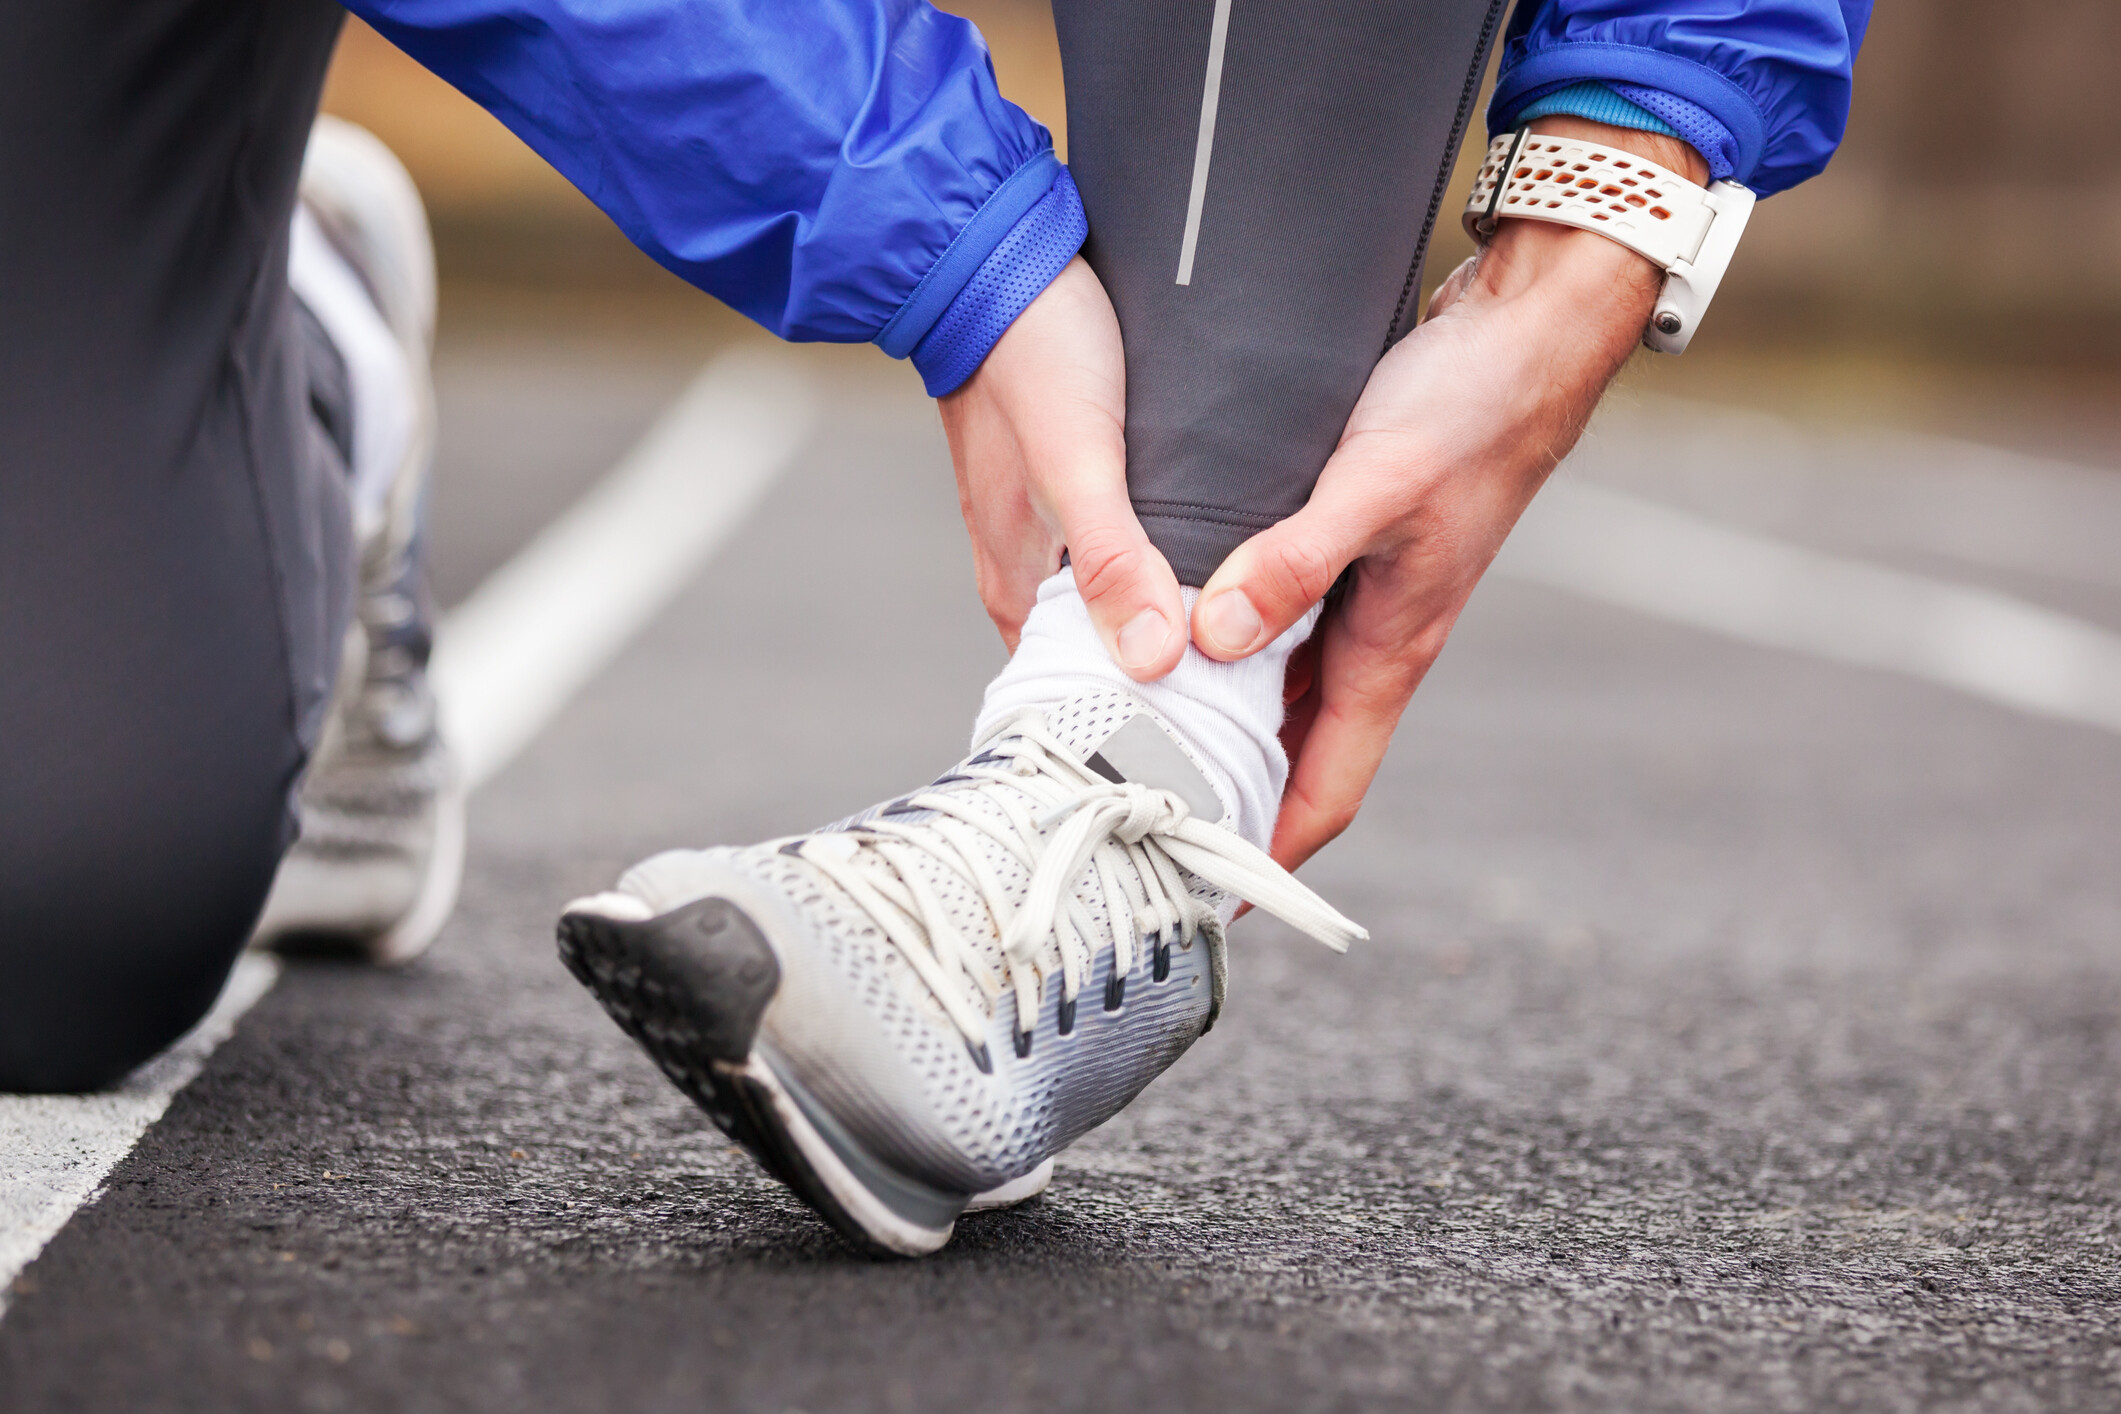 Degrees of Joint Sprains vary according to the injury.